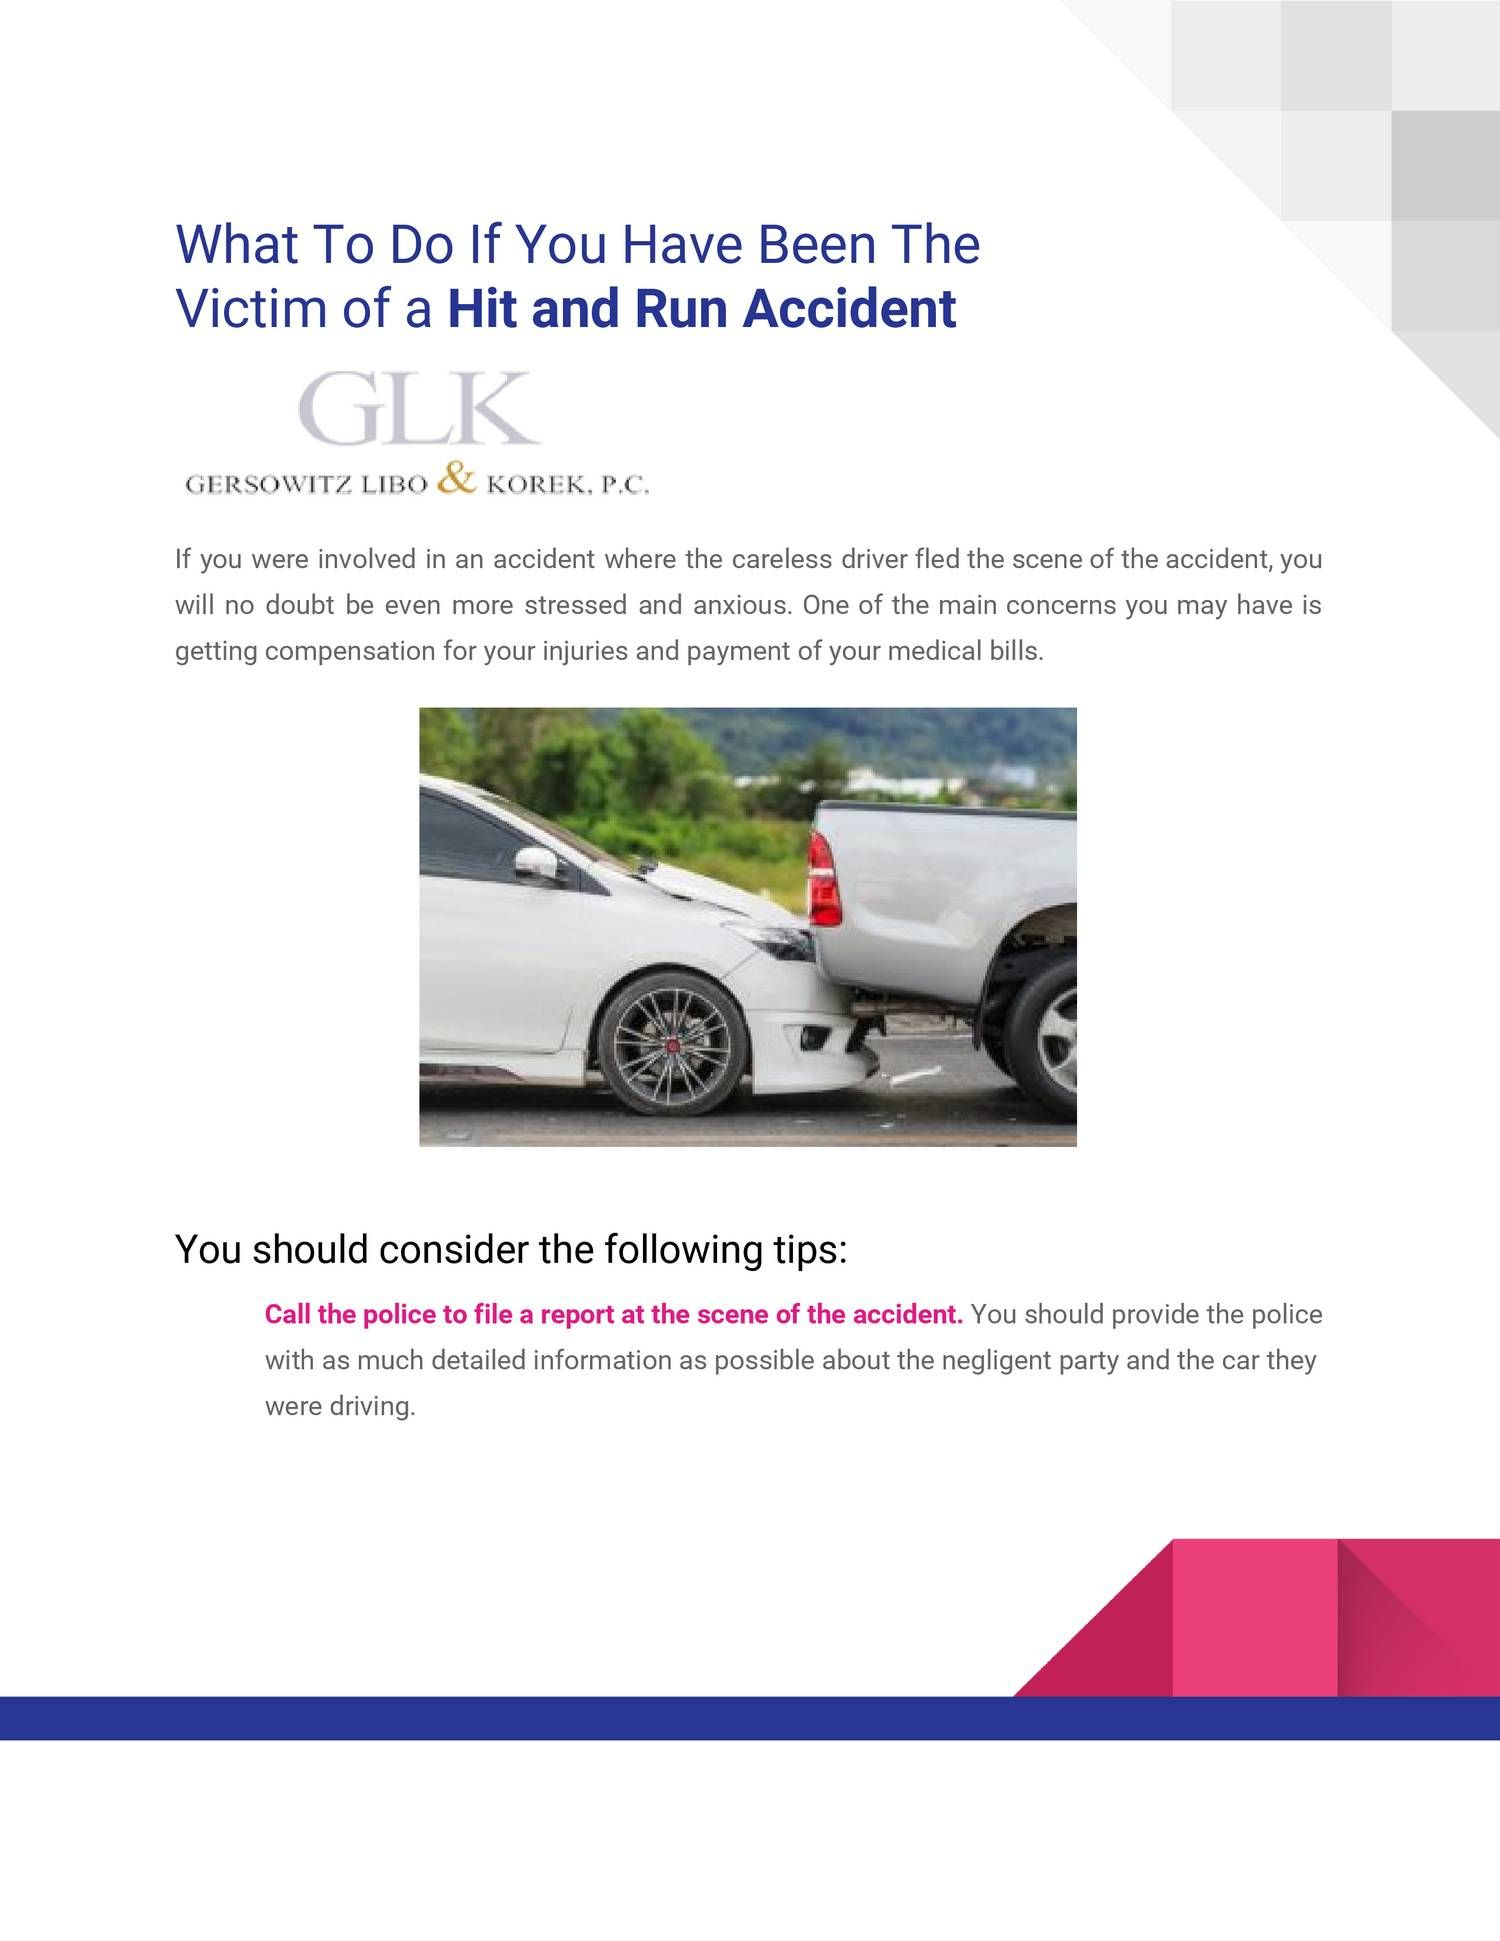 Follow These Tips If You Are Victim Of A Hit And Run Accident Get In Touch With Police As Soon As Possible Hit And Run Accident Personal Injury Attorney